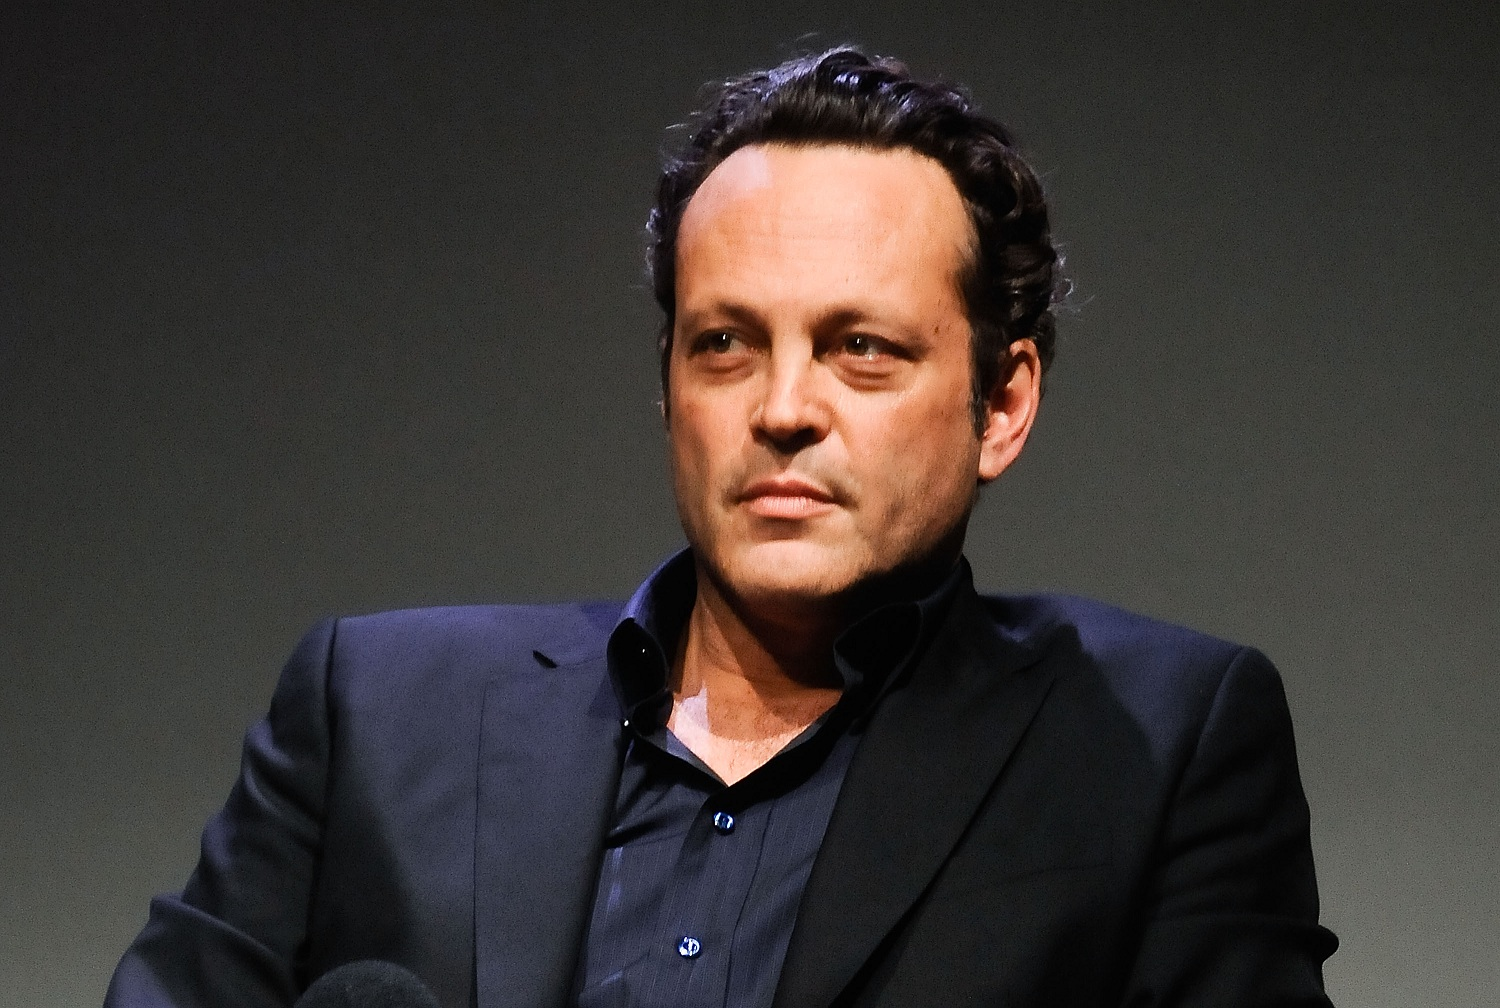 Vince Vaughn  hd wallpaper Wallpaper